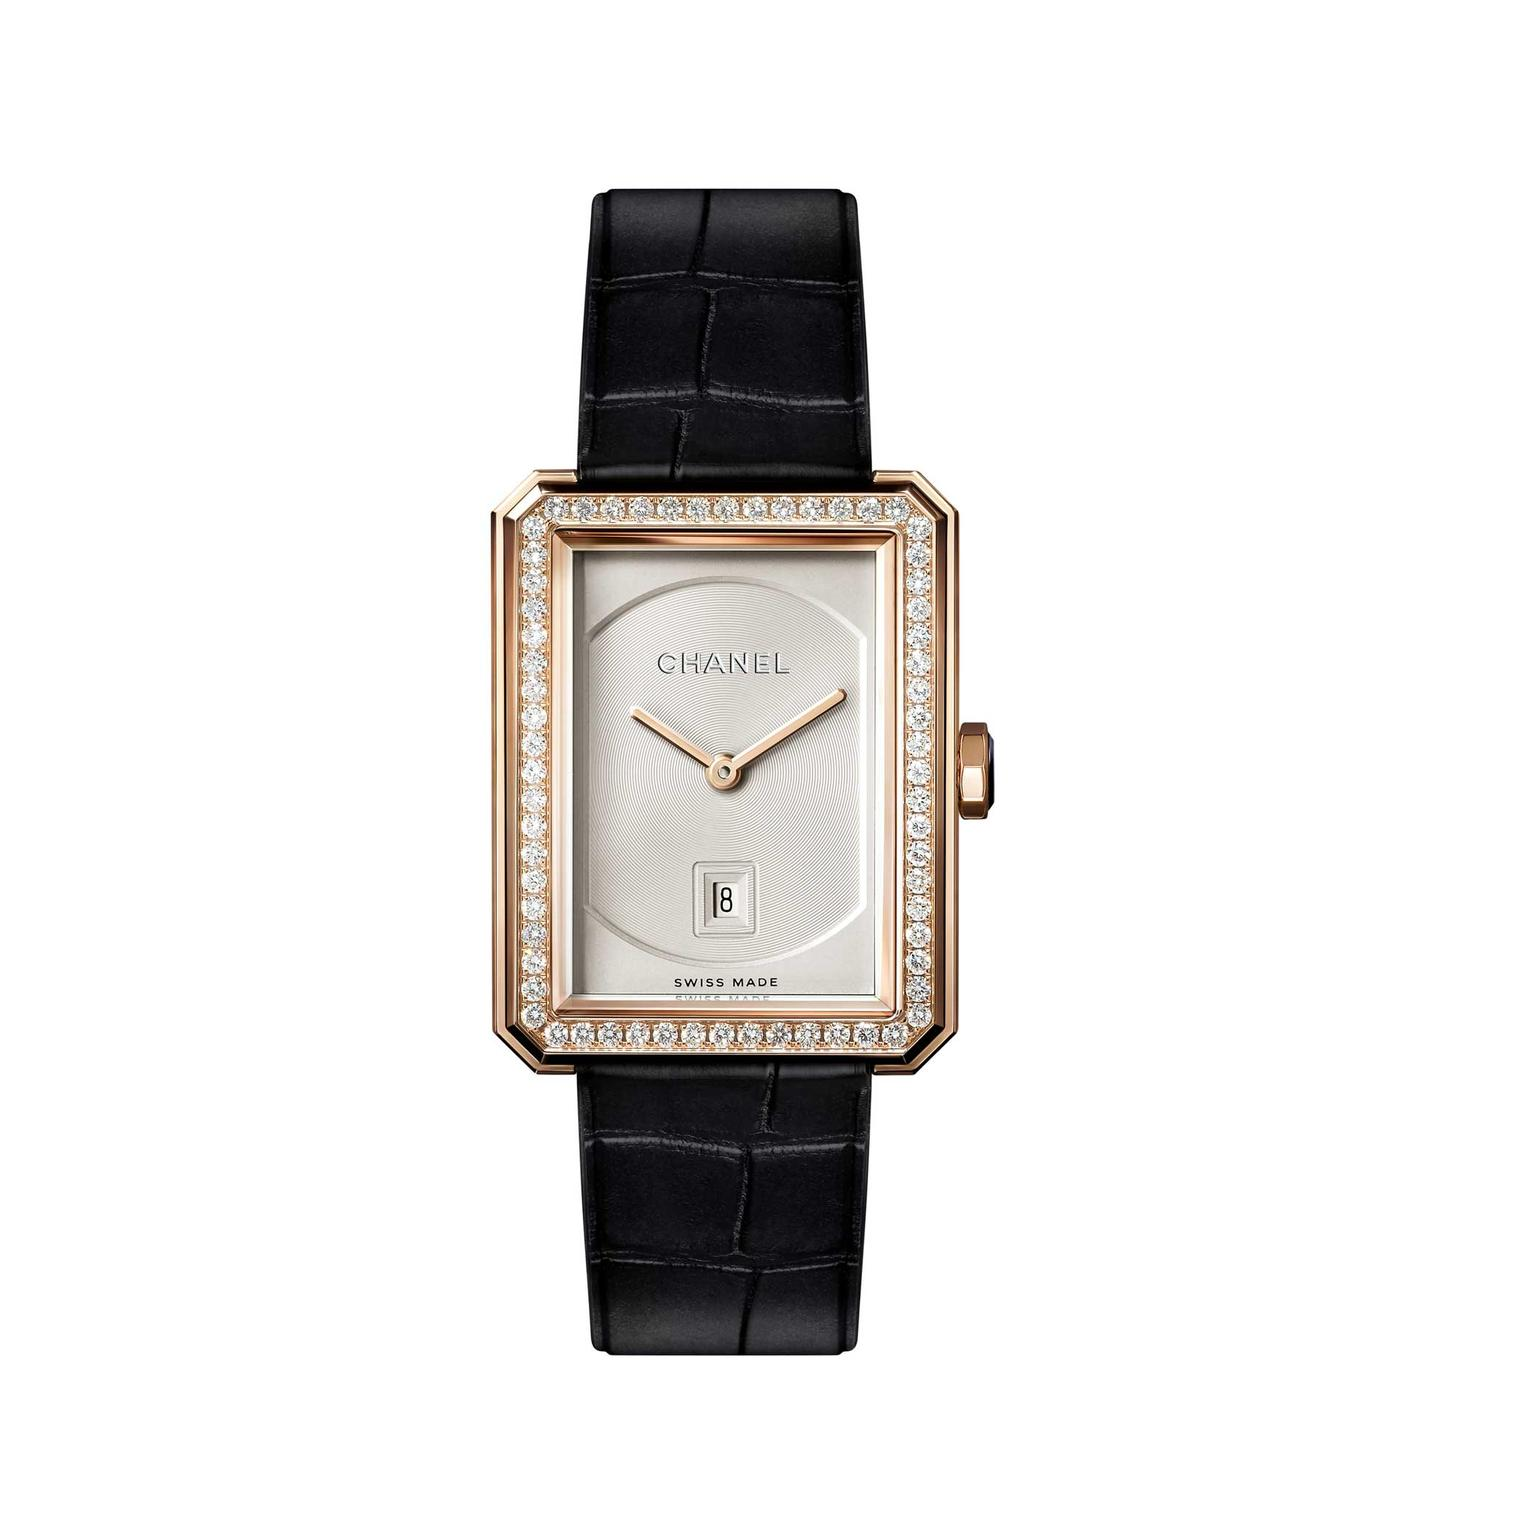 Chanel Boyfriend beige gold quartz watch with diamonds and date window